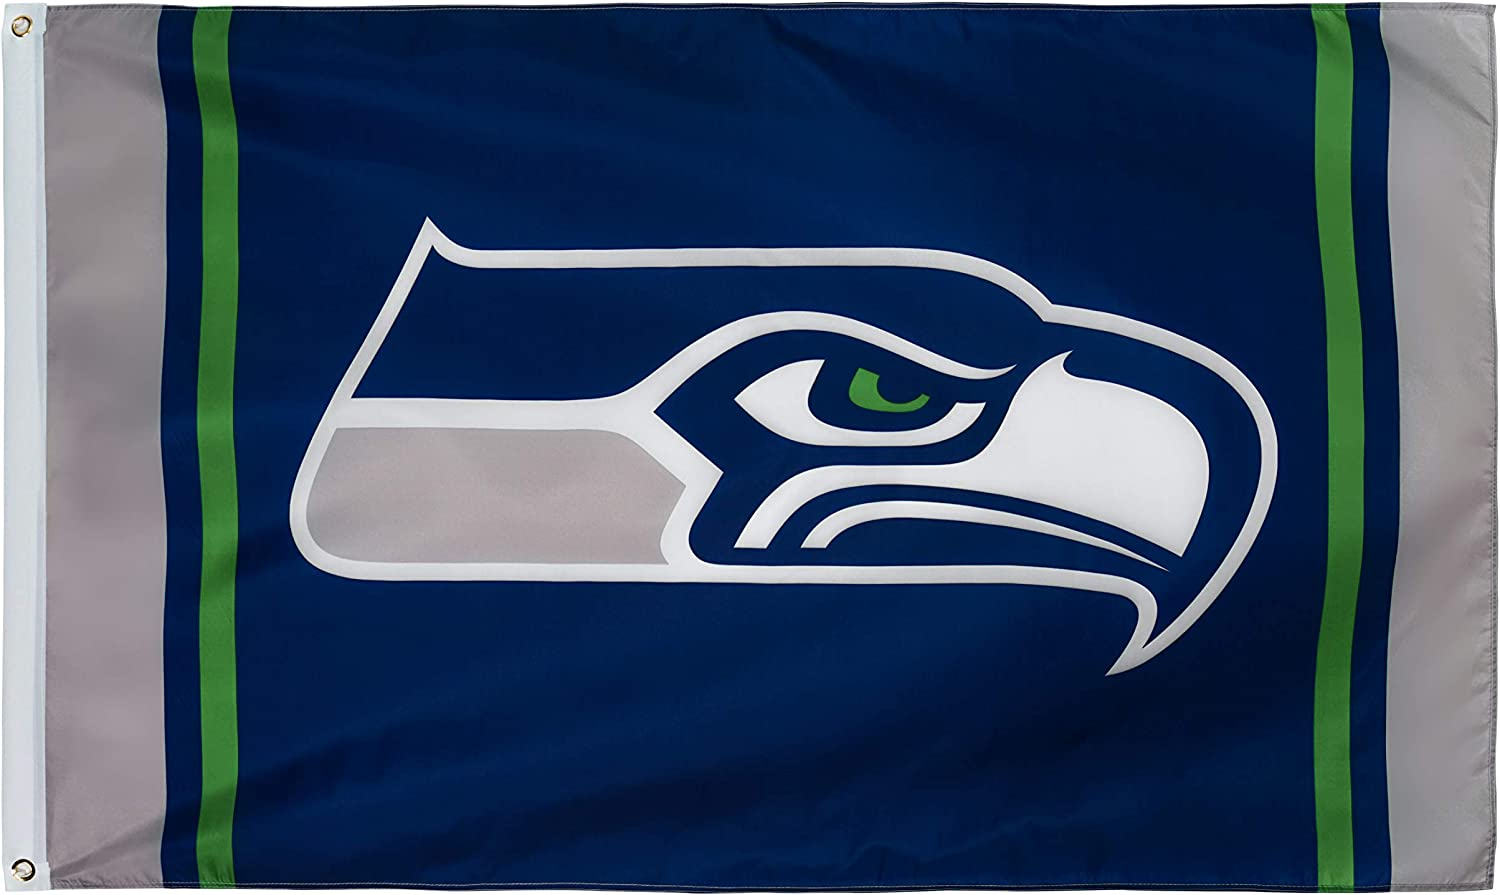 XIFAN Polyester Flag for Seattle Seahawks Team Brass Grommets Football Sports Banner 3 X 5 FT